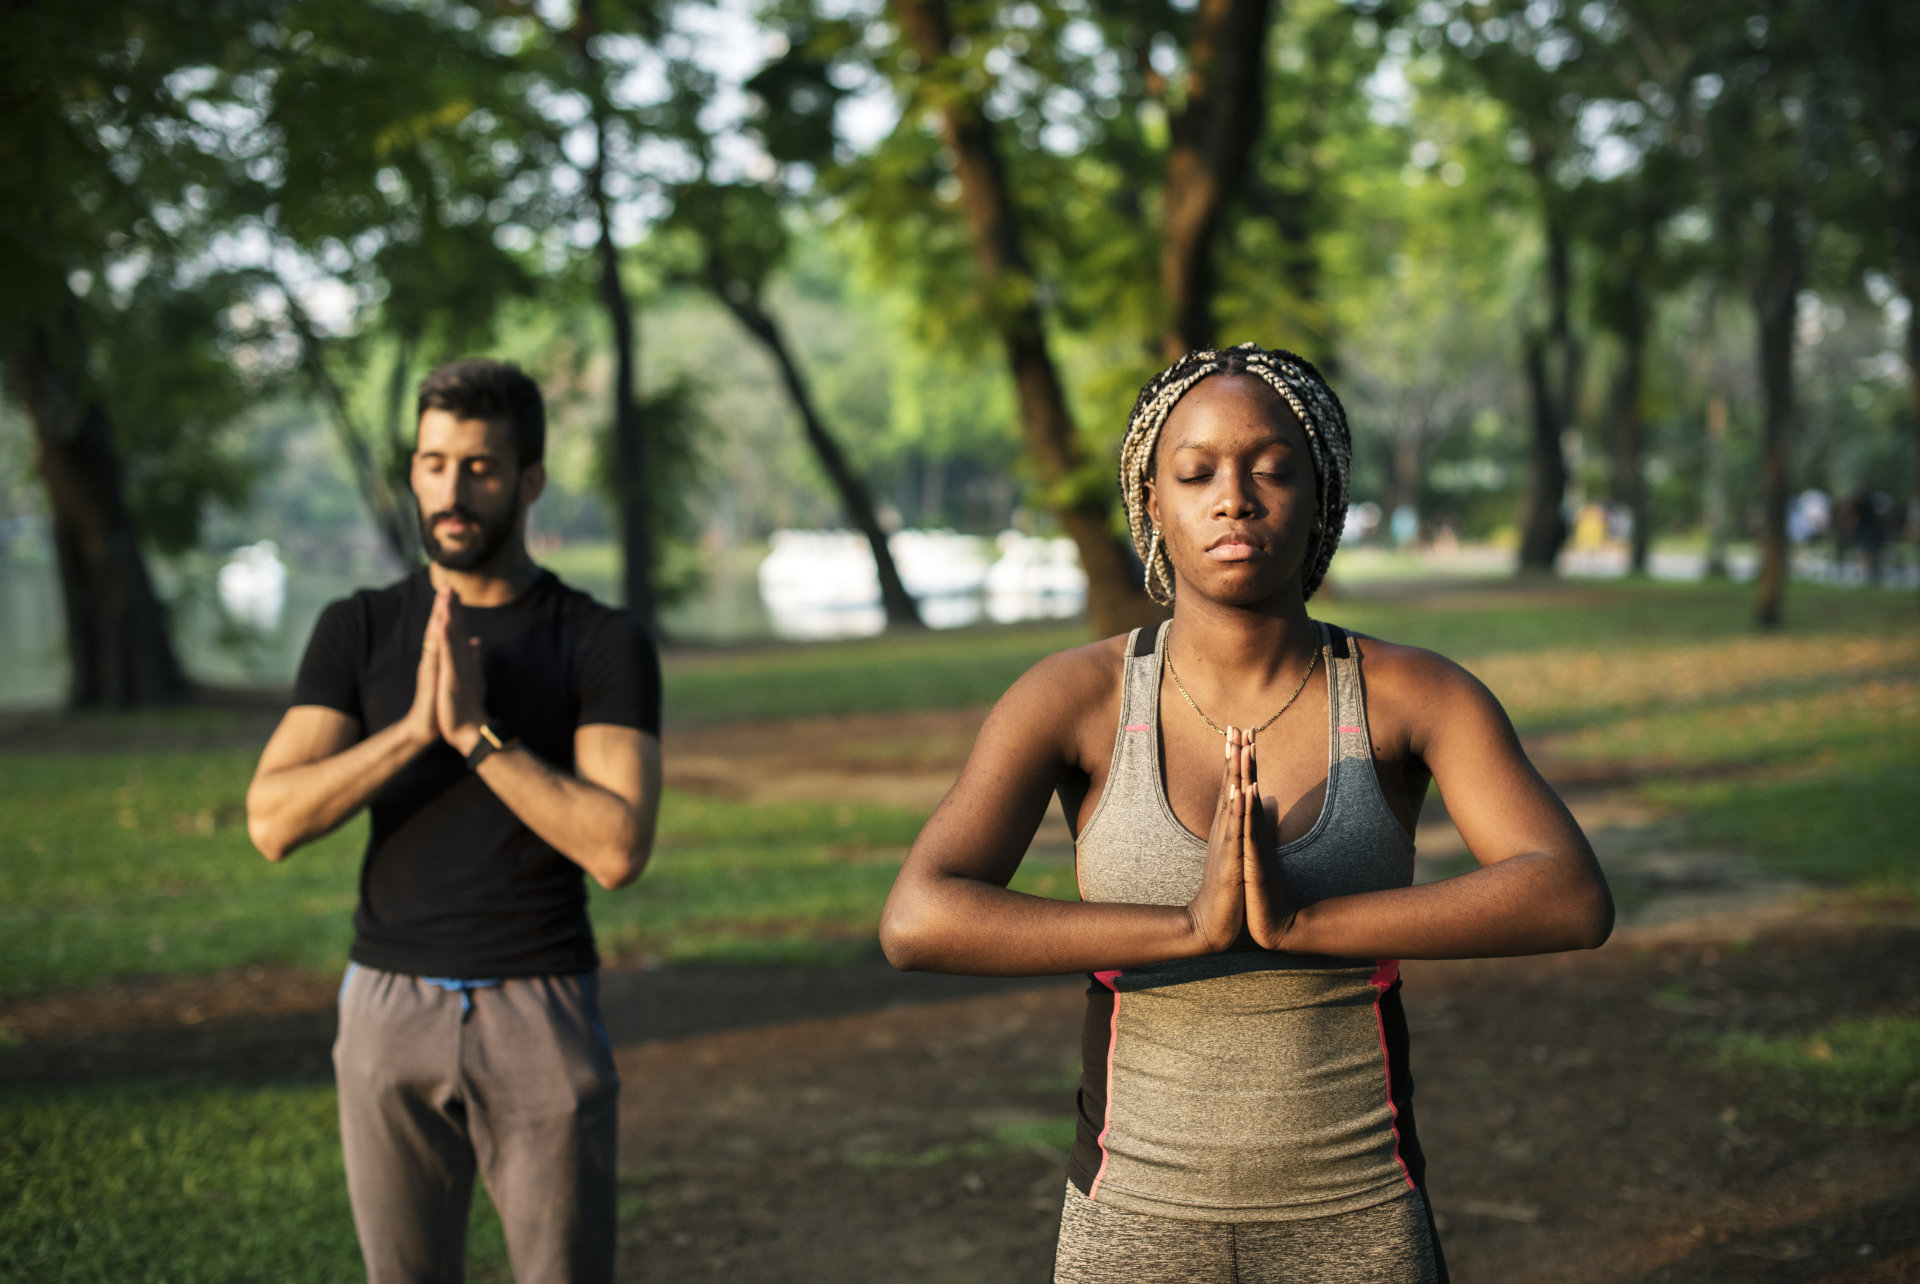 people-yoga-in-a-park-PV8BDSK